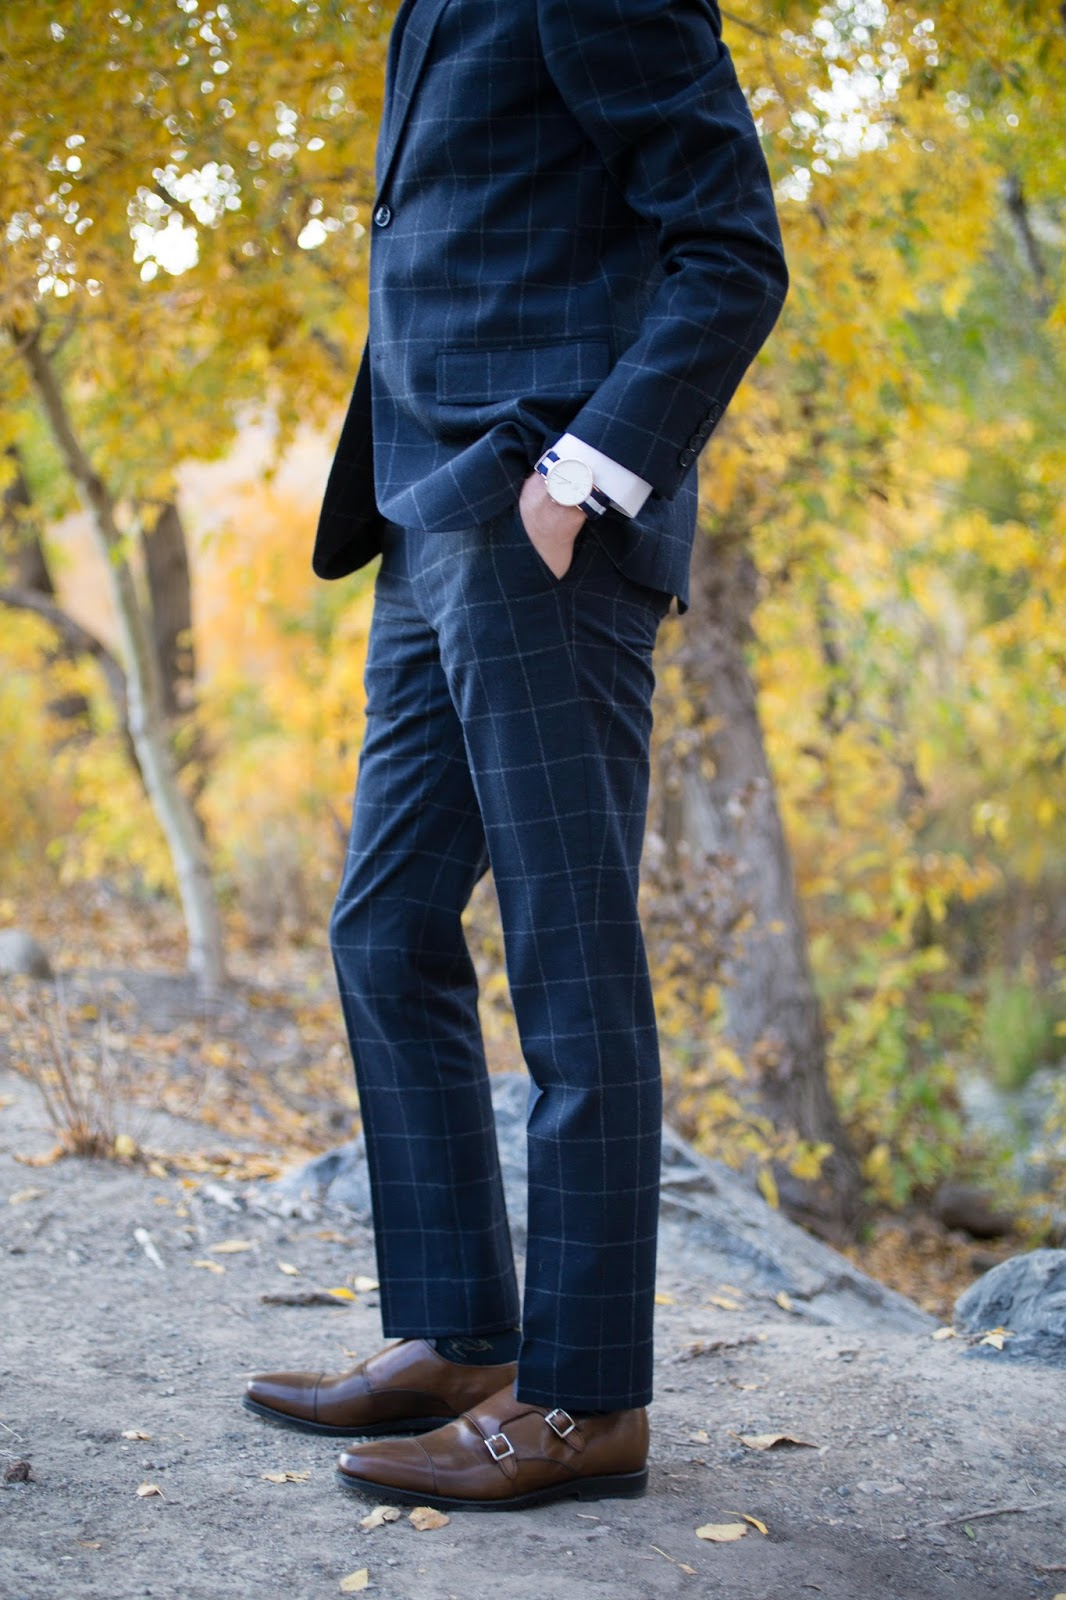 Topman Skinny Windowpane Navy Suit